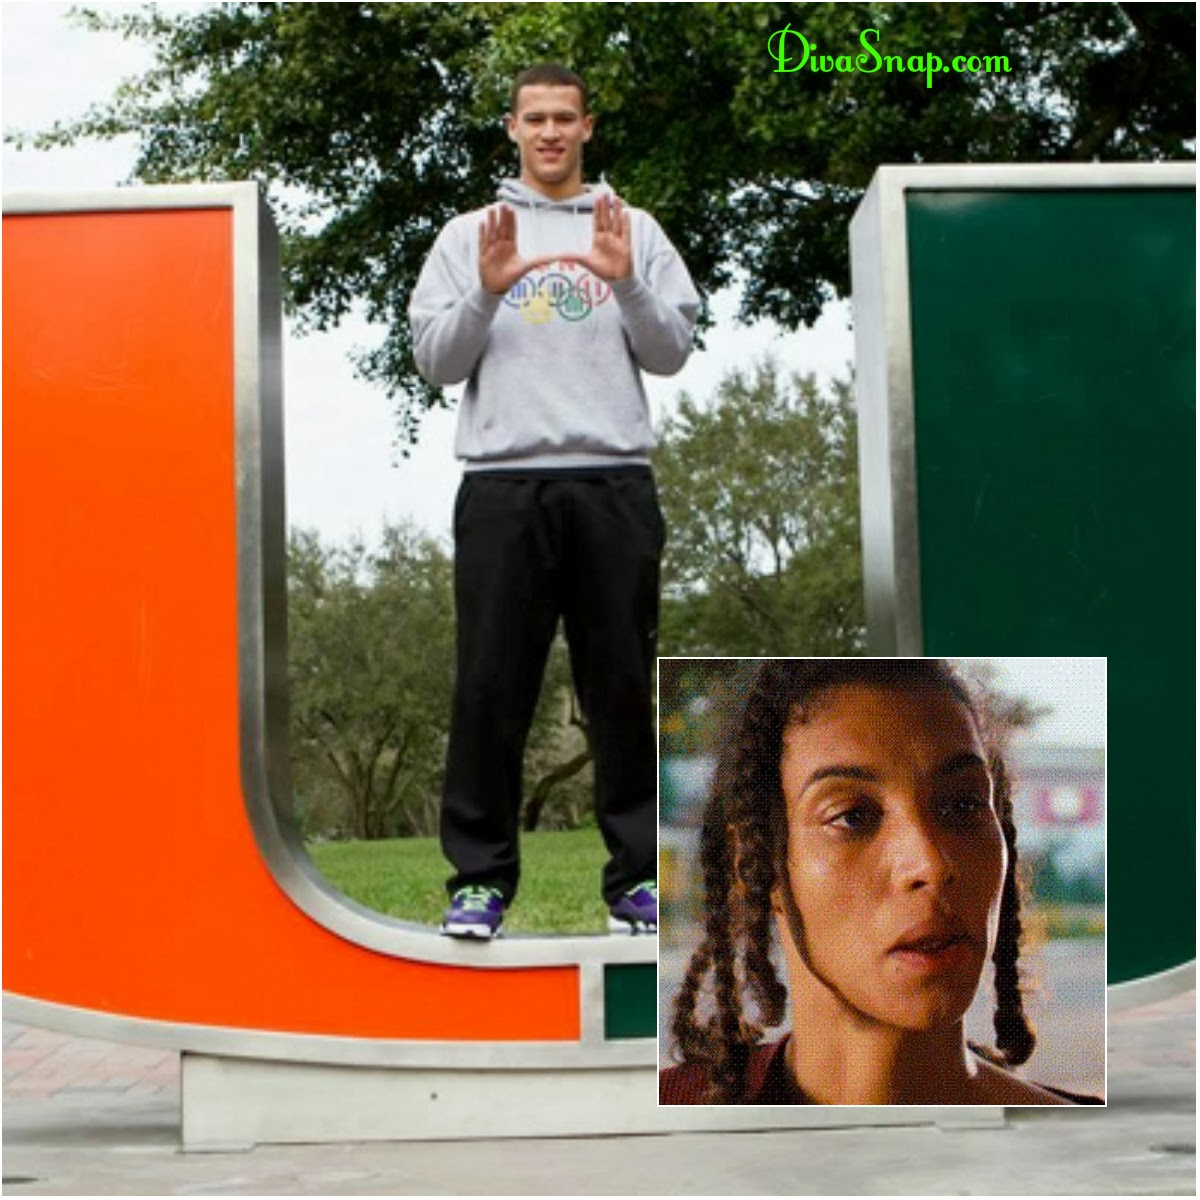 BYE FELICIA: REMEBER FELICIA FROM FIRDAY... MEET HER SON A STAR QB WHO WILL BE BALLIN FOR UNIVERSITY OF MIAMI - DivaSnap.com